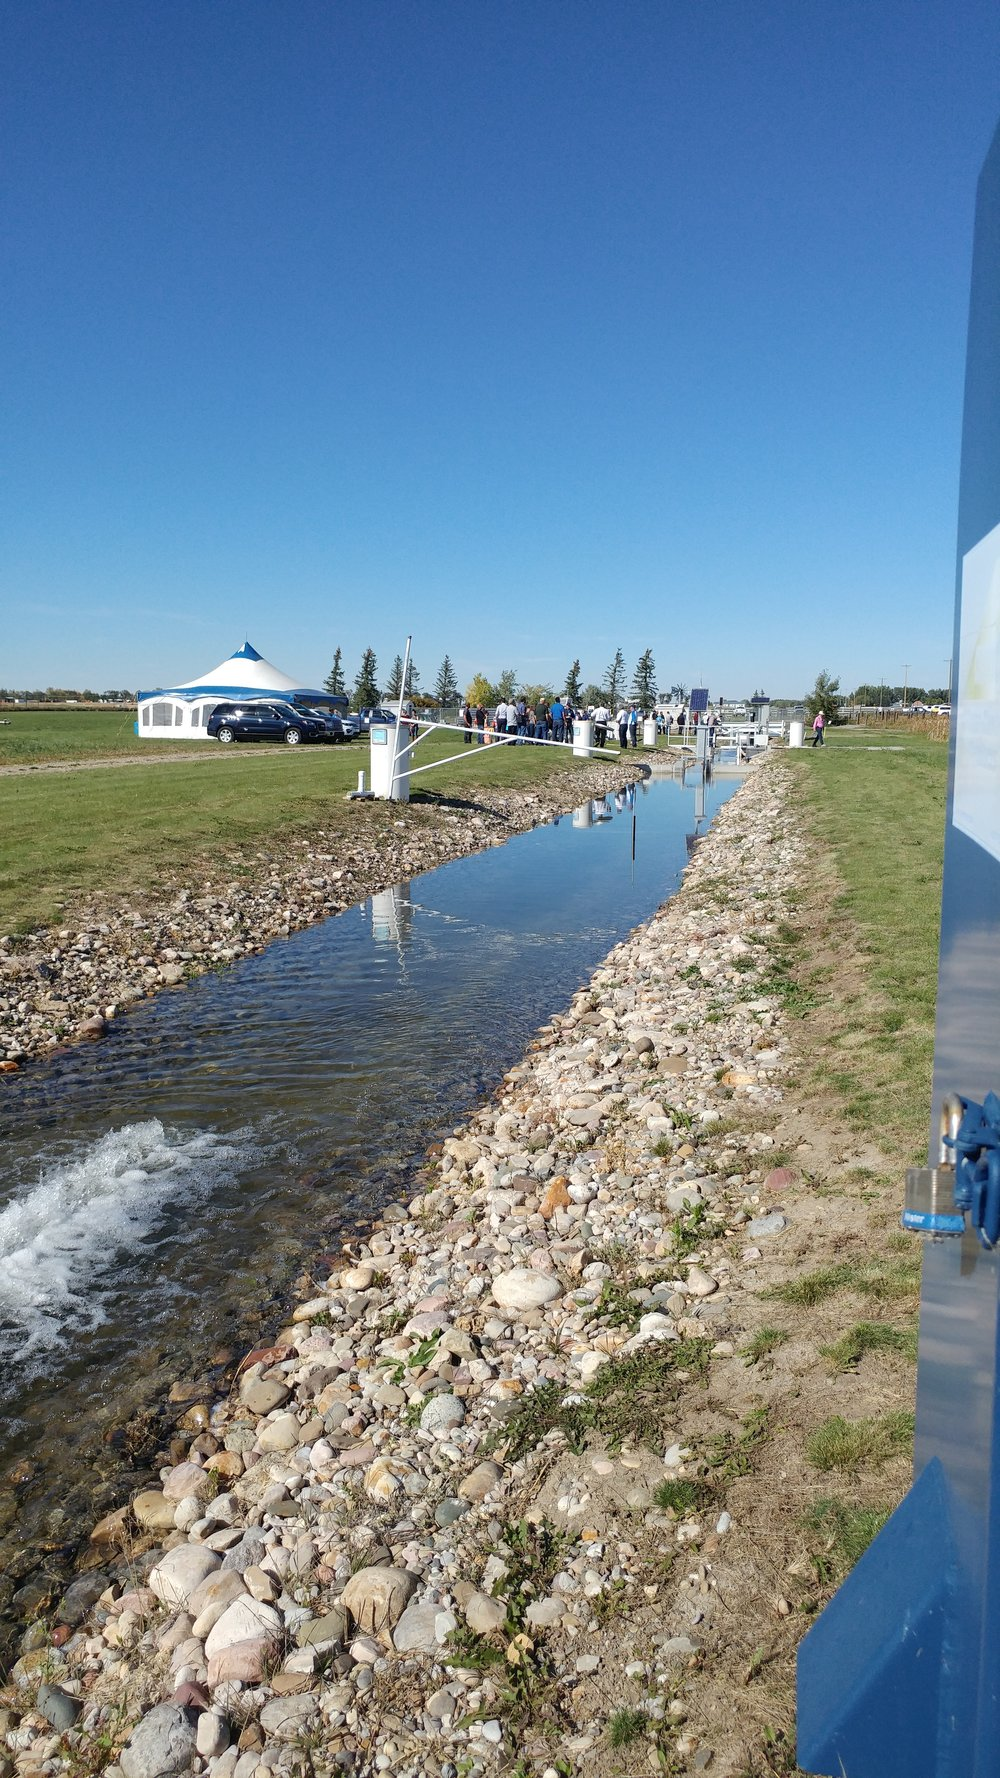 The Alberta Irrigation Technology Centre - where organizers gave a live tour of the Water Monitoring Technology and Equipment.